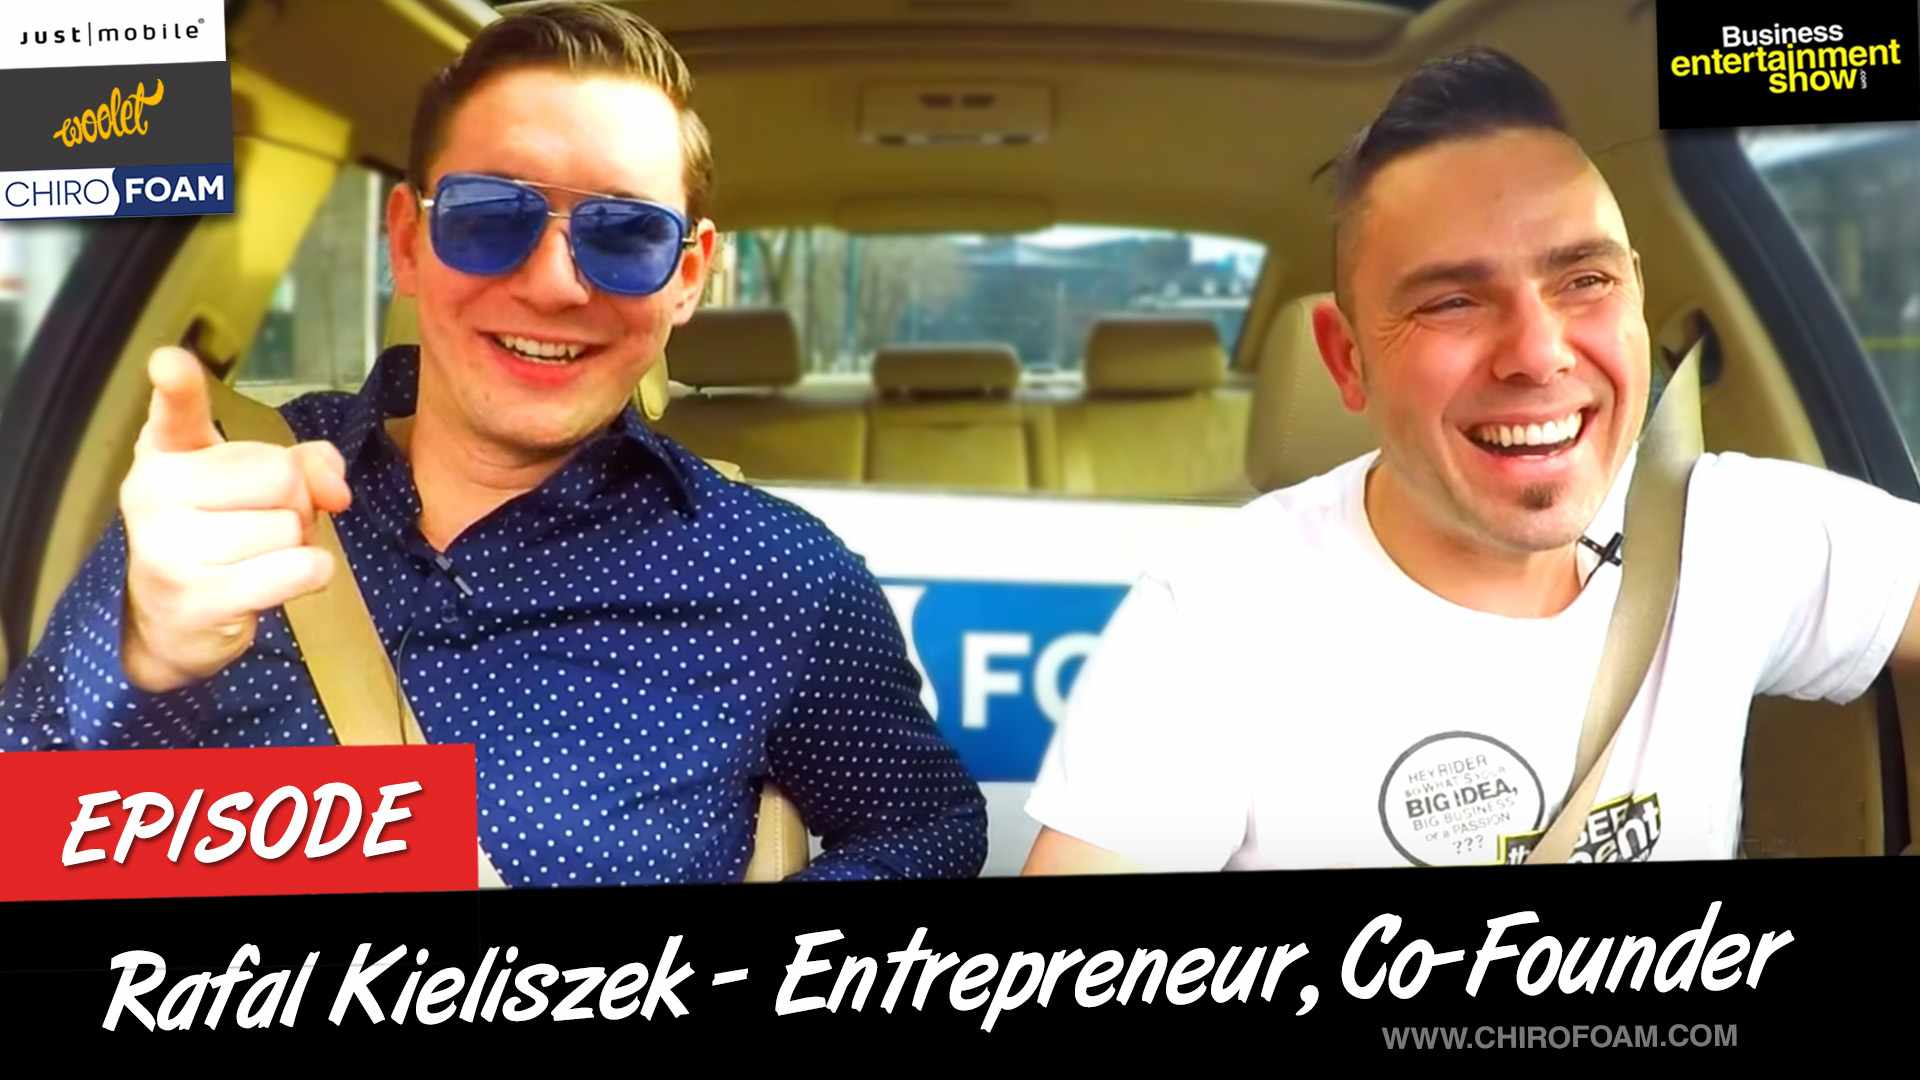 Entrepreneur Interview - Chirofoam Business Owner Rafal Kieliszek on Business Entertainment Show